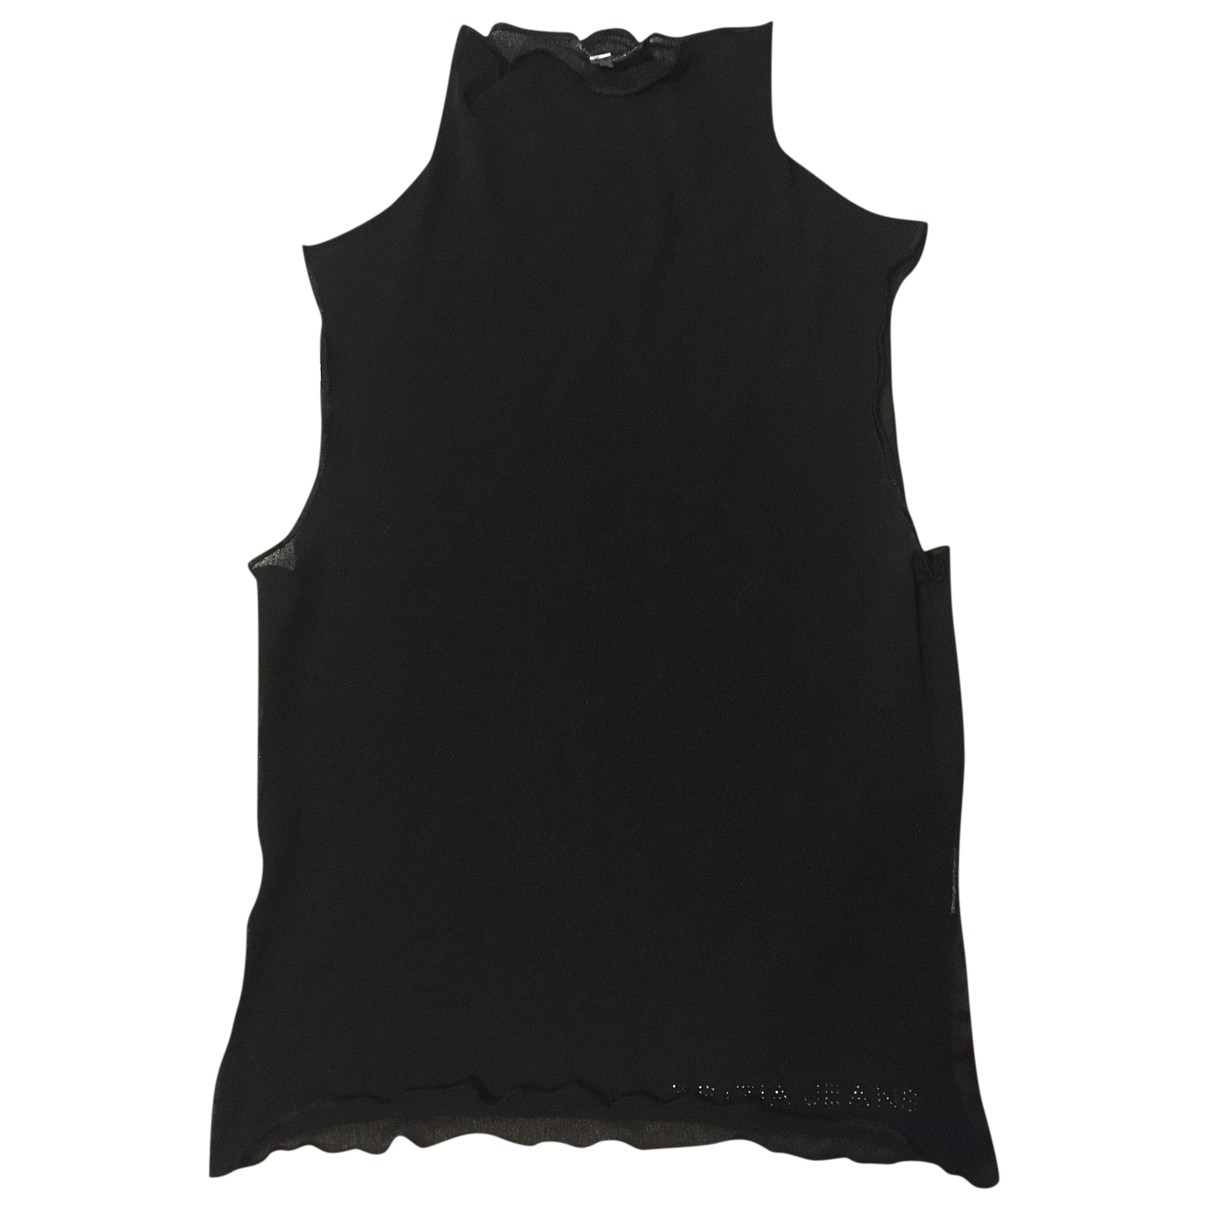 Krizia \N Black  top for Women 40 IT